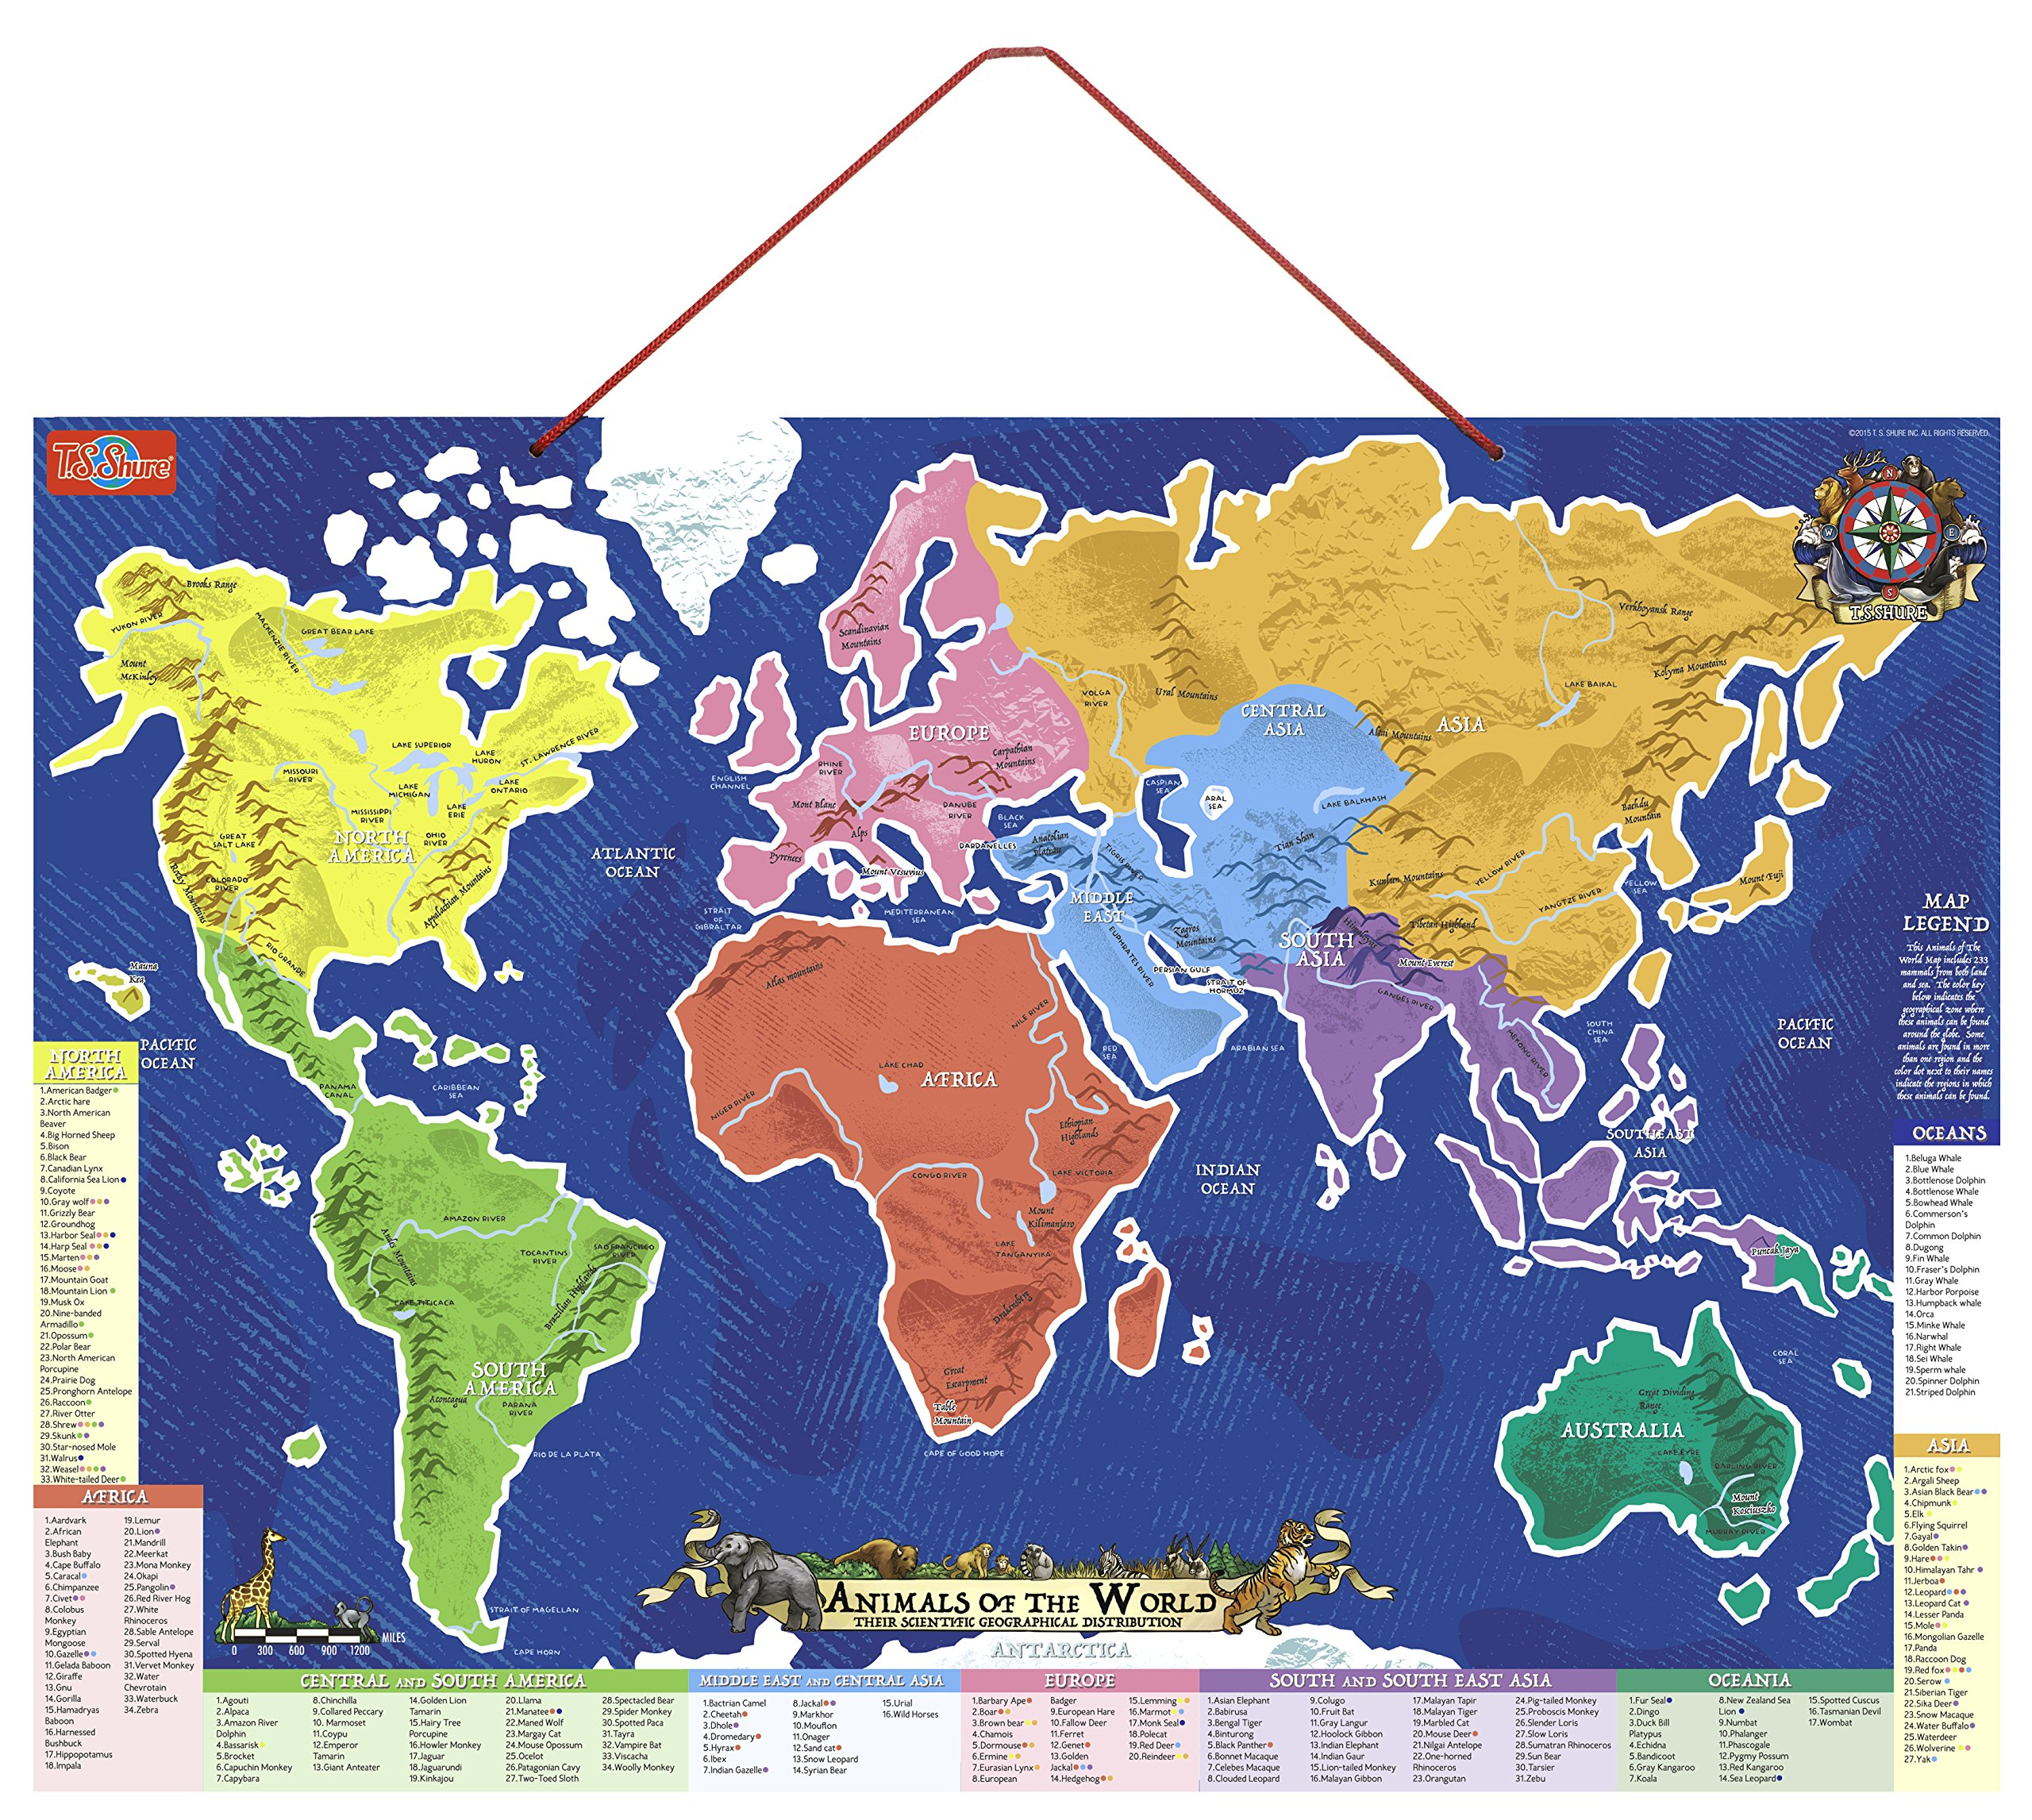 T.S. Shure Animals of the World Wooden Magnetic Map Puzzle by T.S. Shure (Image #3)